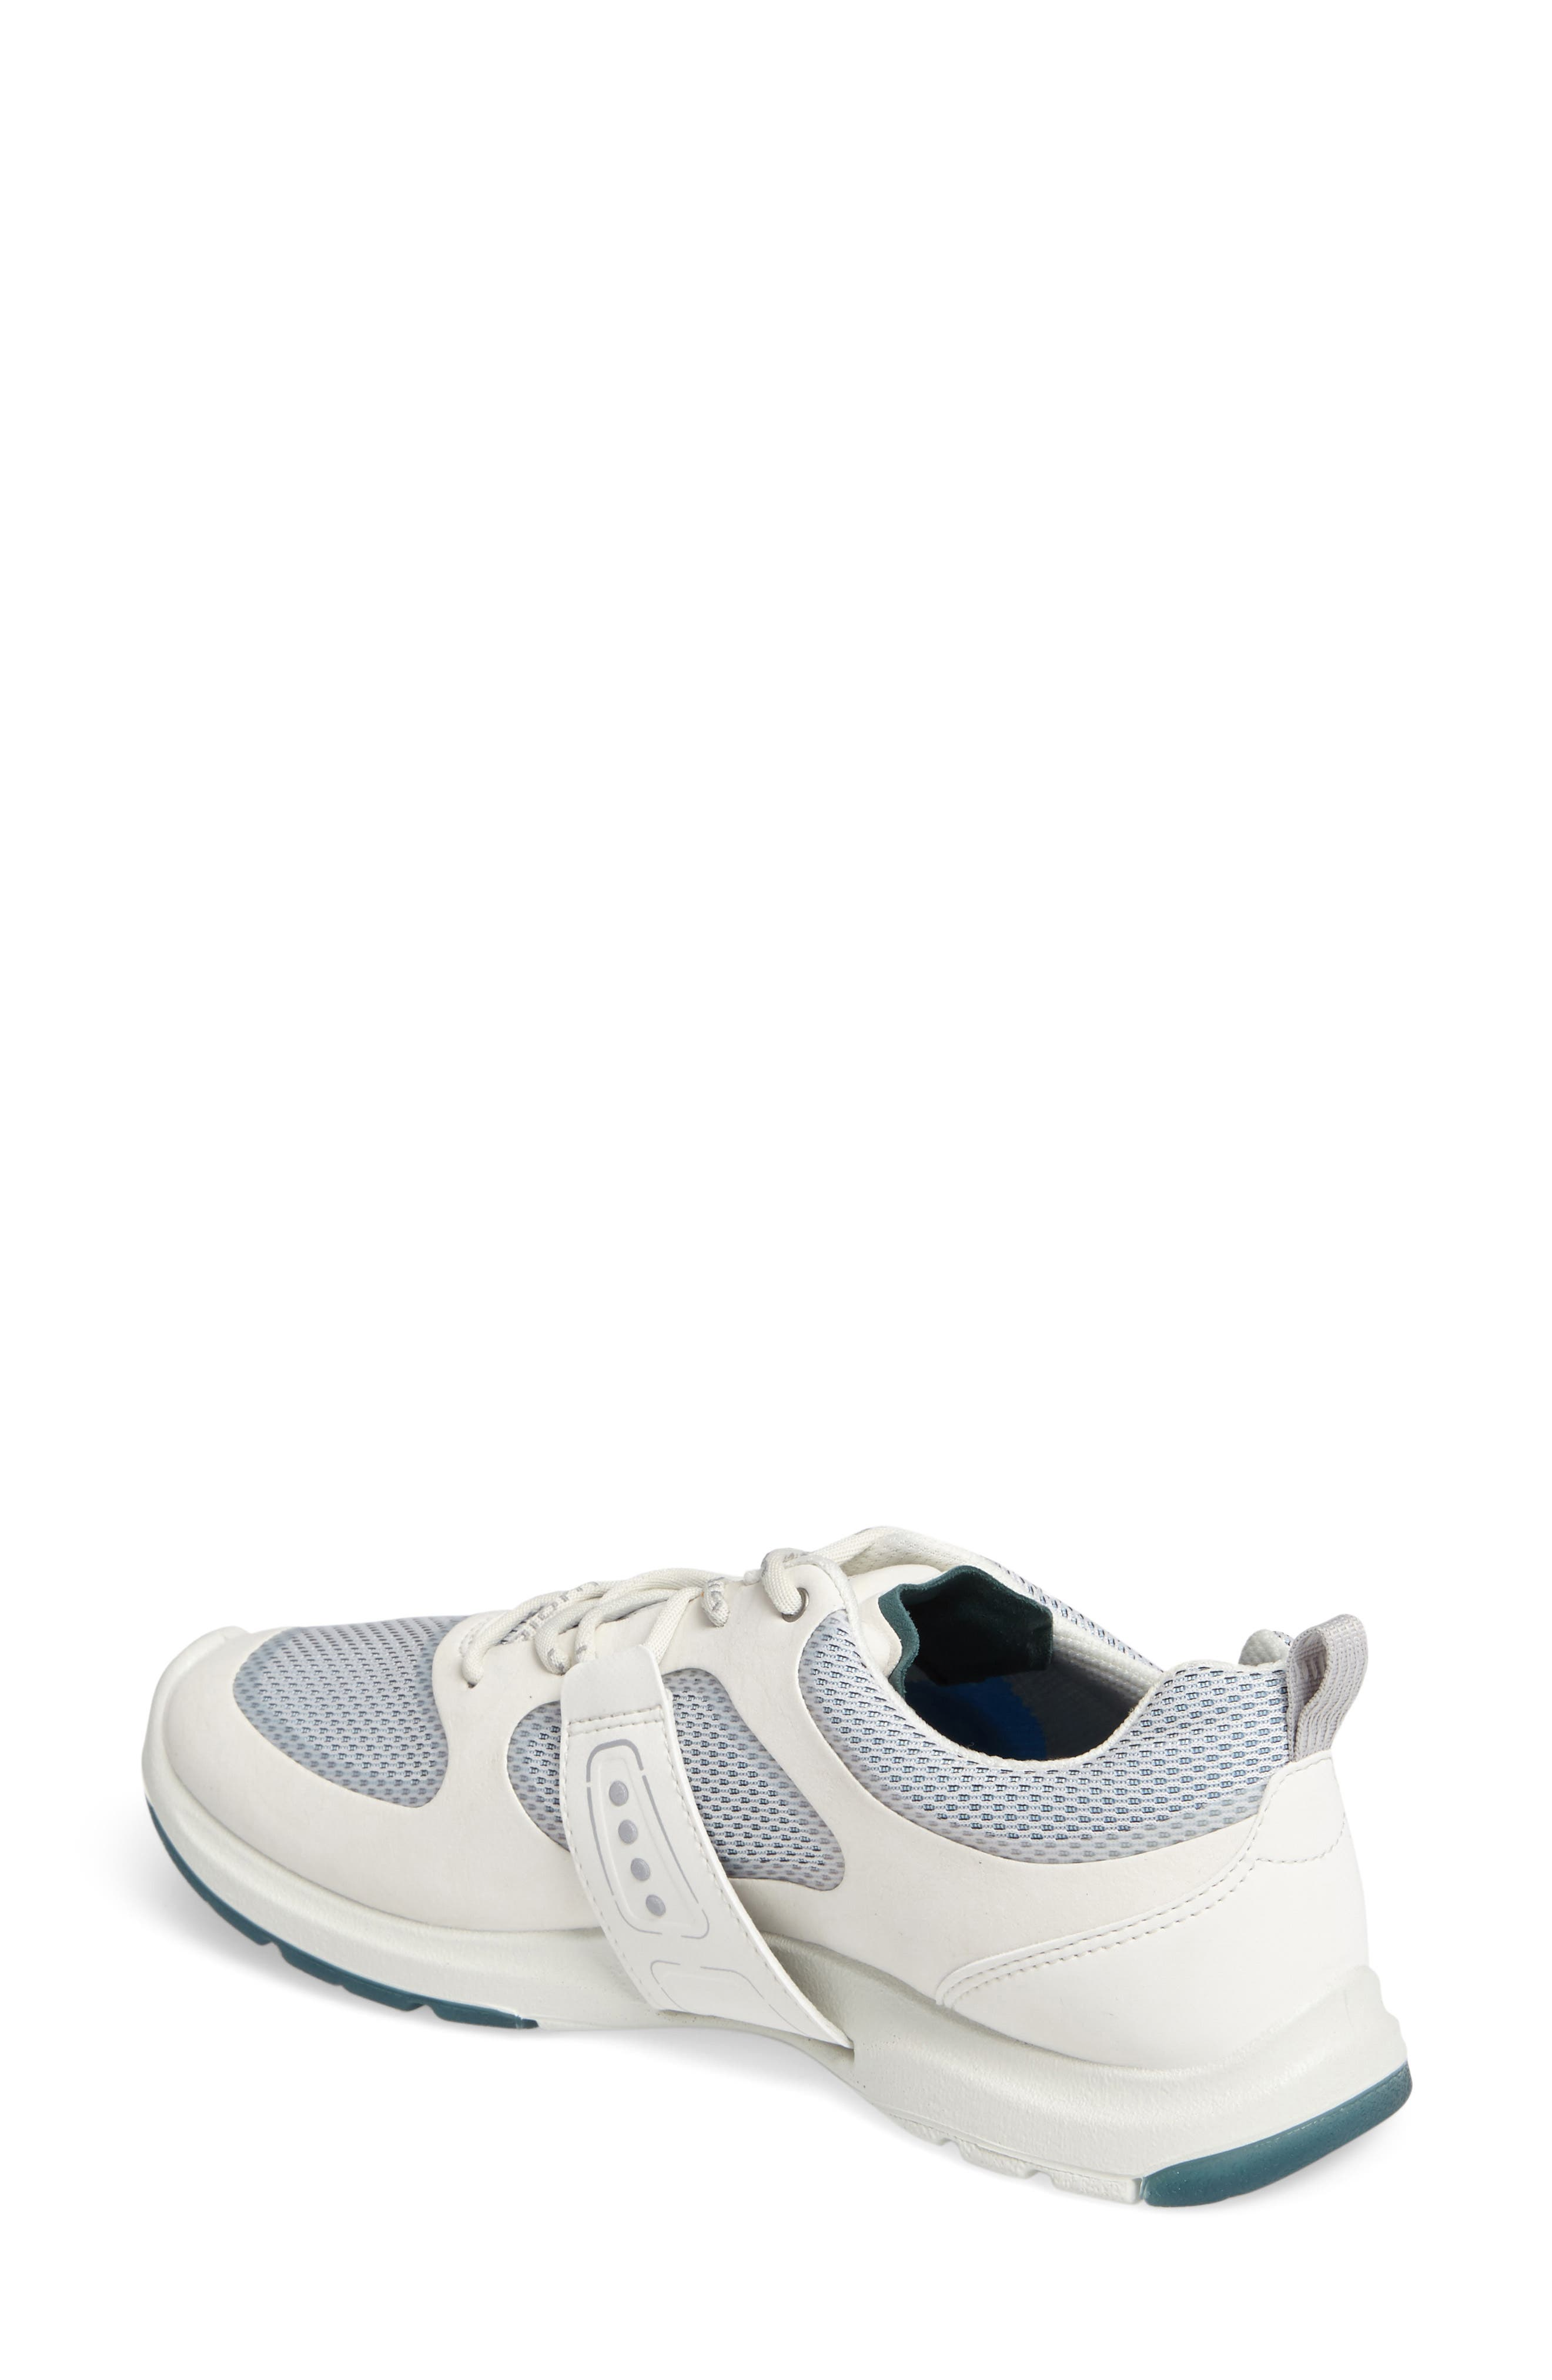 BIOM Amrap Sneaker,                             Alternate thumbnail 2, color,                             SHADOW WHITE LEATHER